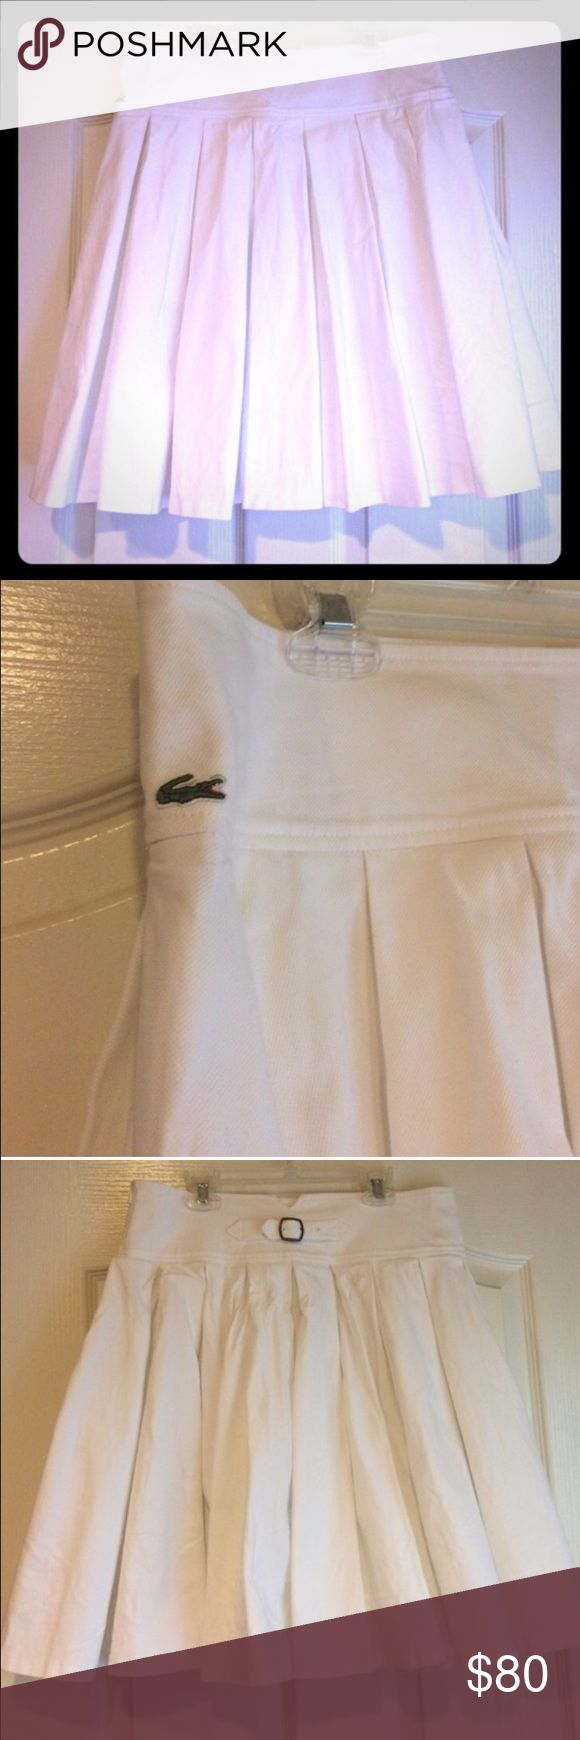 Lacoste White Pleated Skirt Pretty skirt - purchased here size 44 Lacoste Skirts Circle & Skater